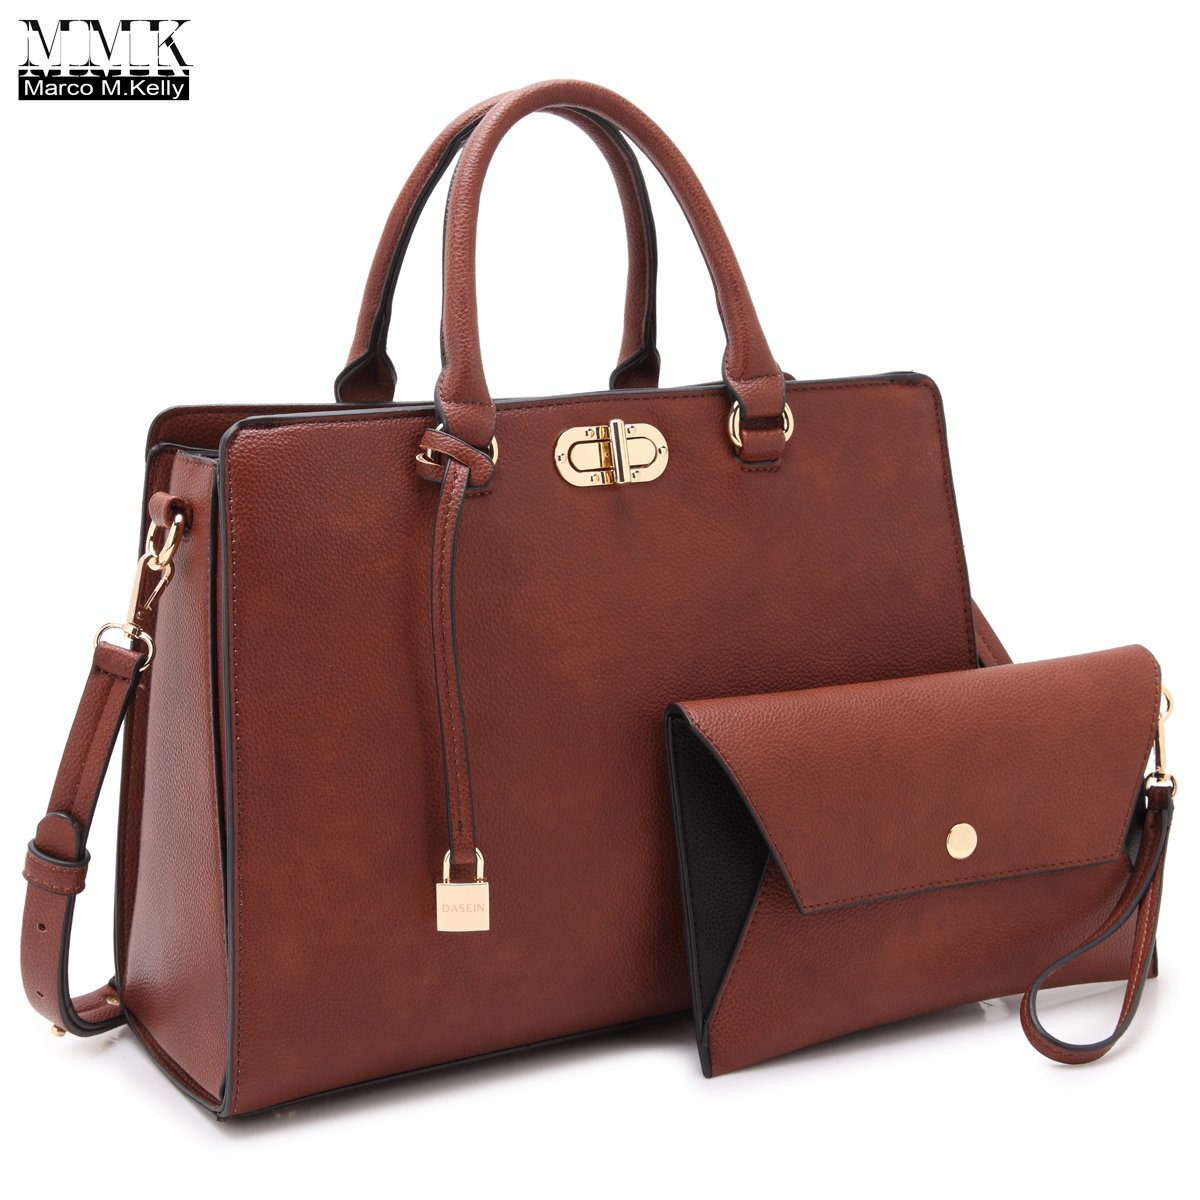 MMK collection Fashion Handbag with coin purse(XL-11) Classic Women Purse Handbag for Women` Signature fashion Designer Purse ~ Perfect Women Satchel Purse (XL-23-7581-Brown)